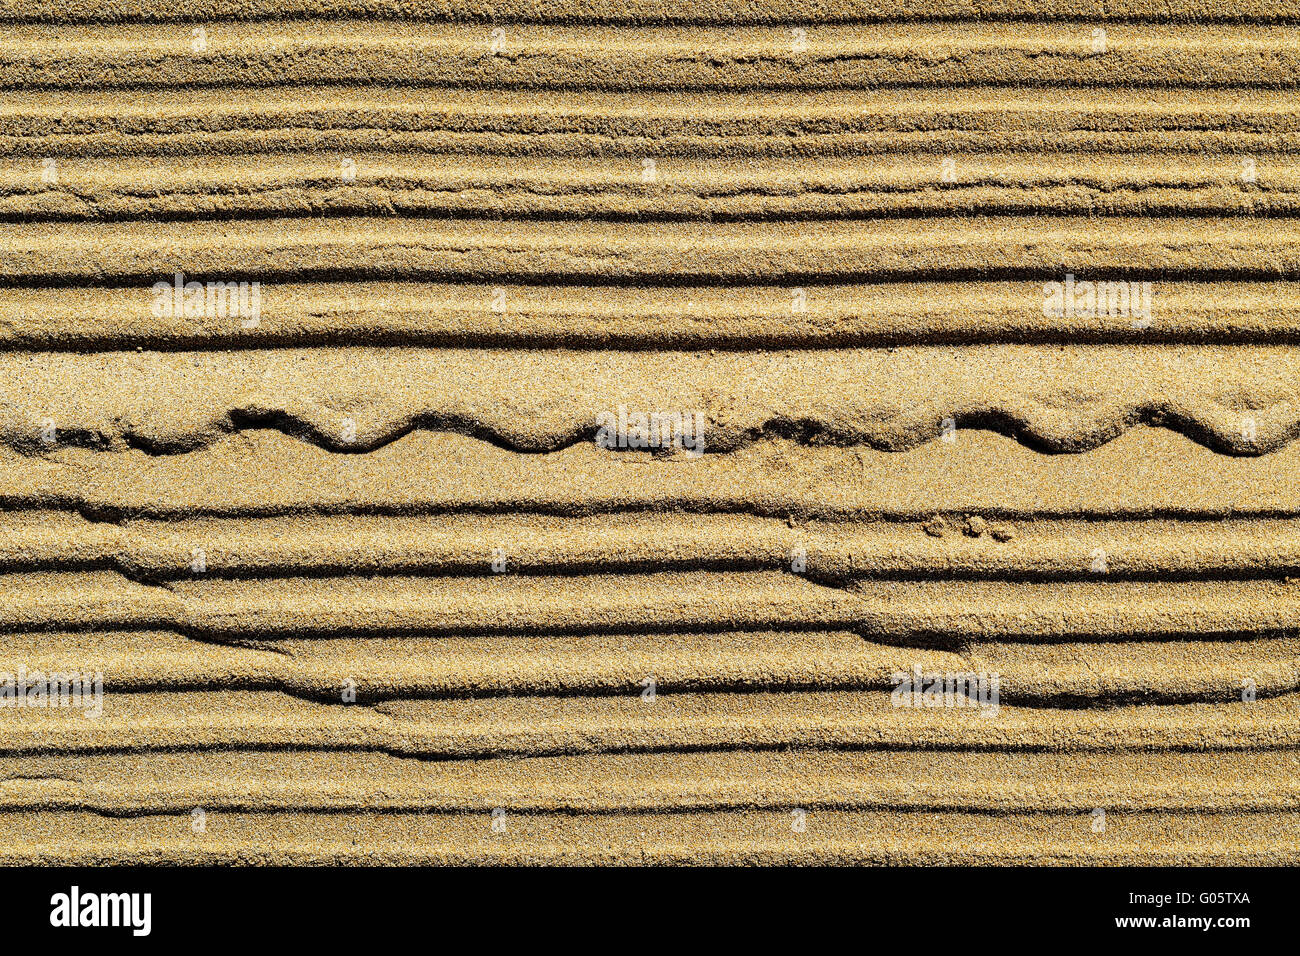 closeup of a striped pattern in brown sand - Stock Image